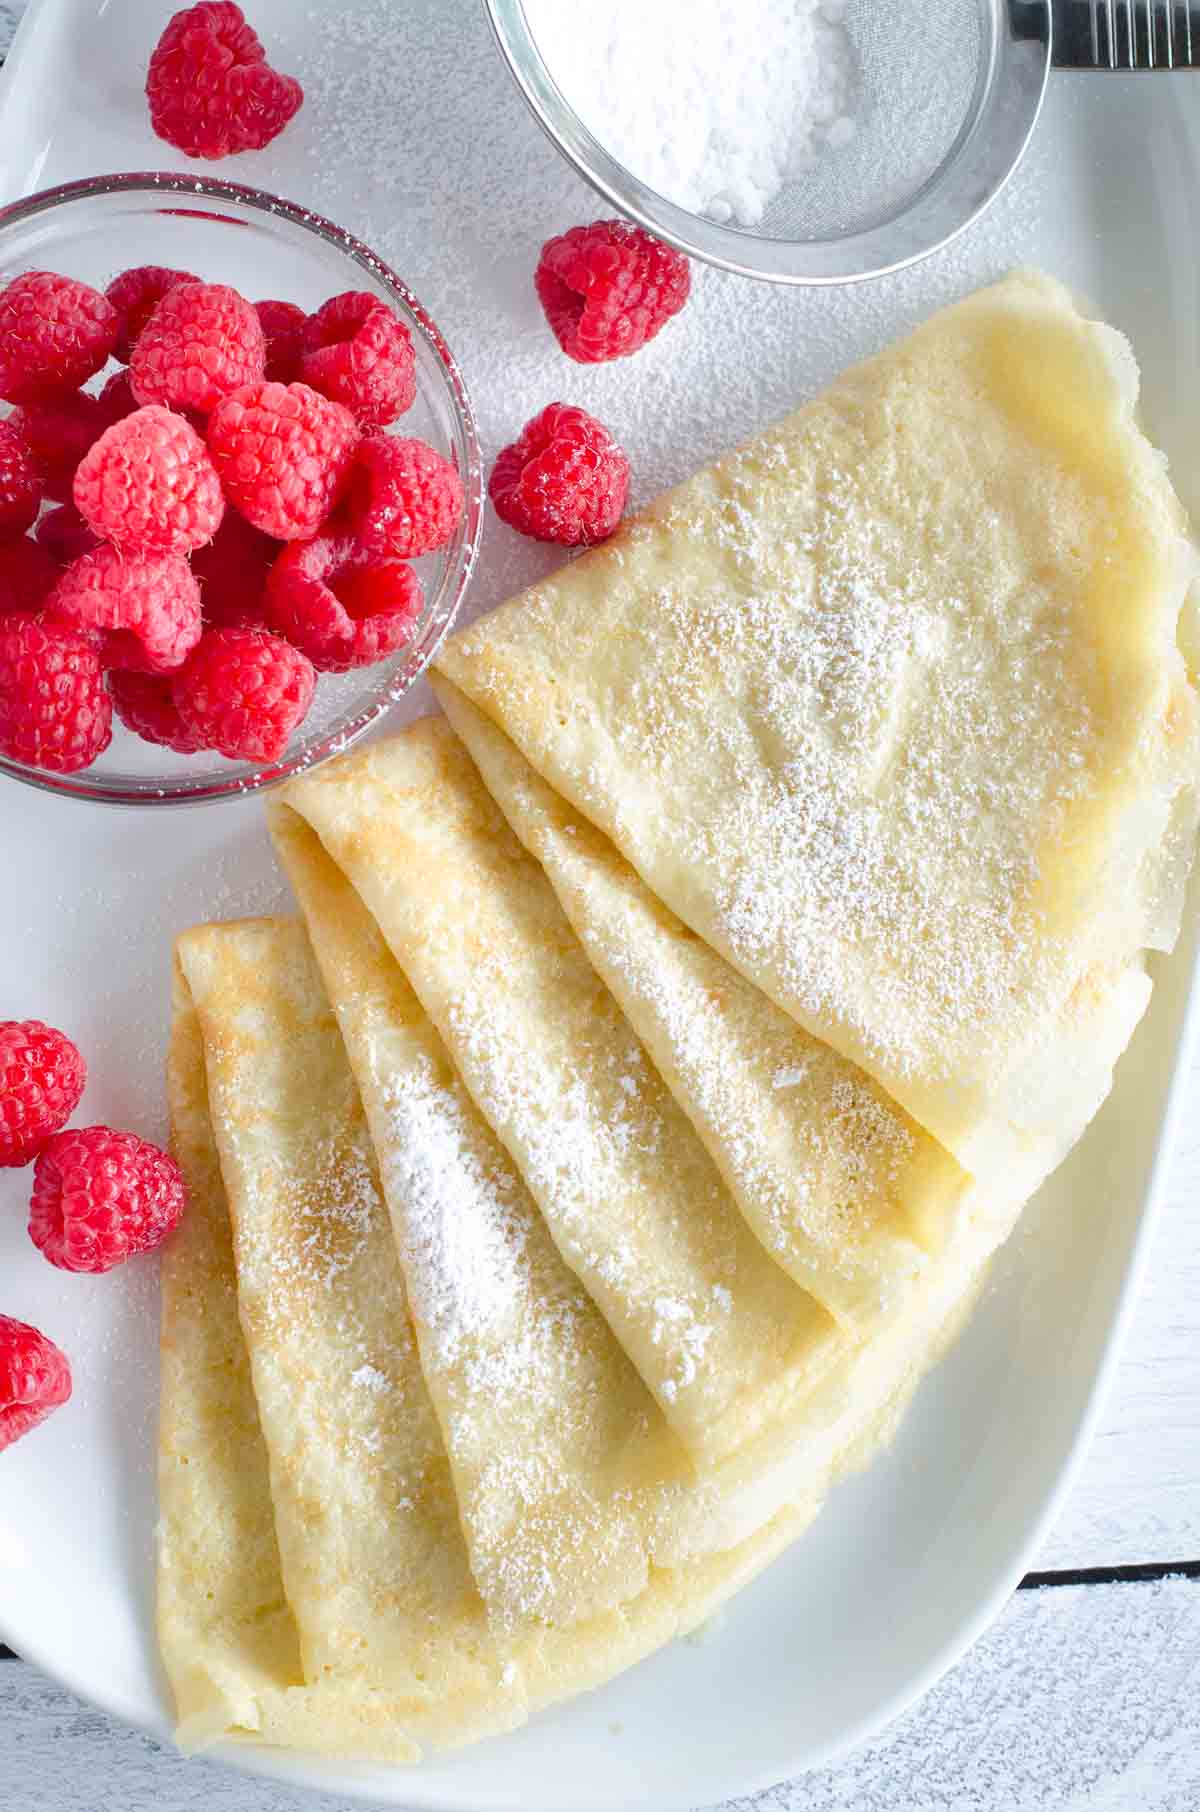 crepes folded on plate with raspberries